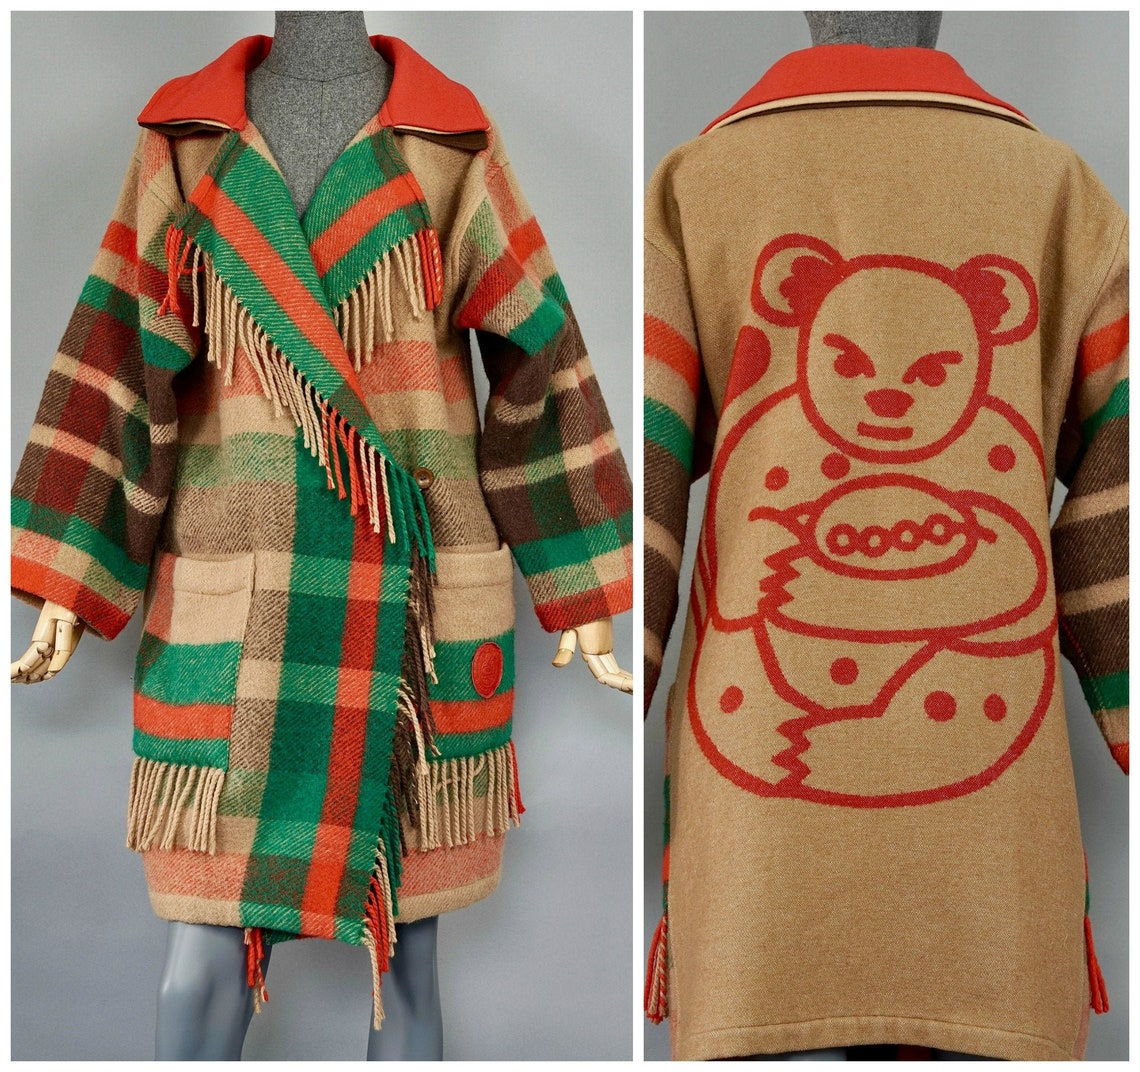 Vintage Jeans Charles De Castelbajac Ko And Co Tartan Fringe Teddy Bear Coat